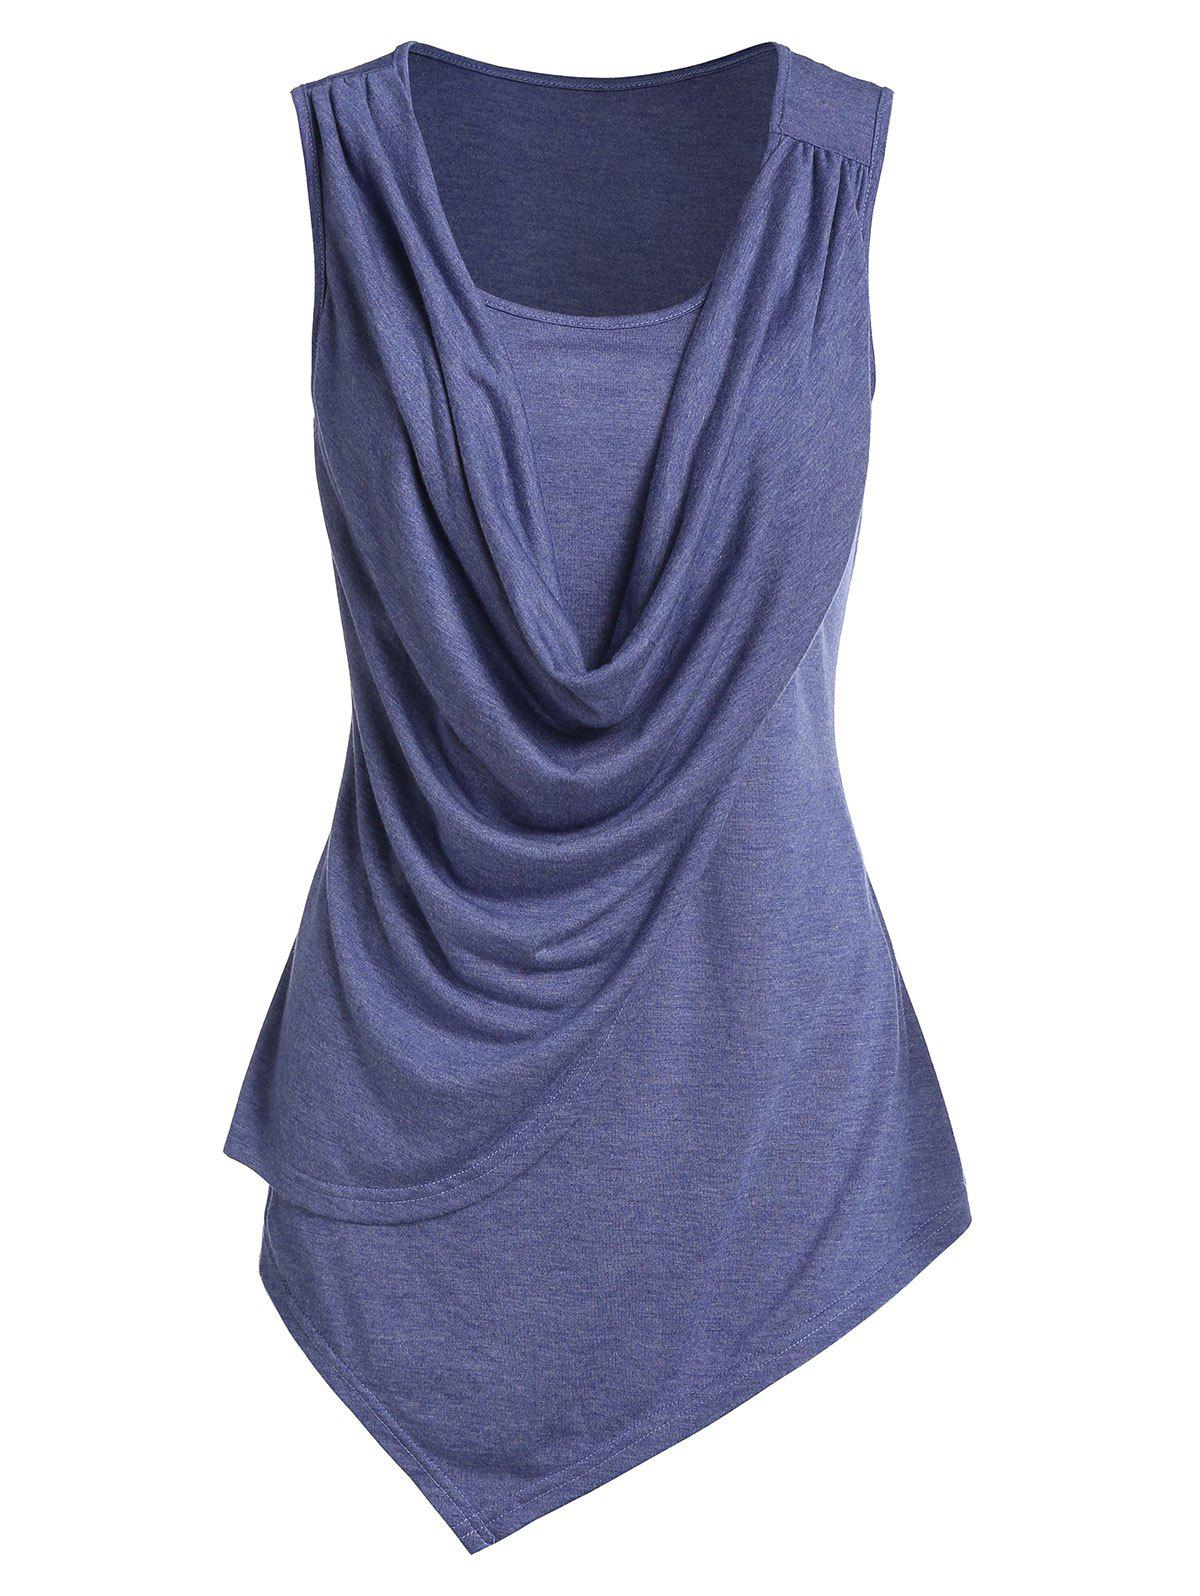 Asymmetric Draped Overlap Tank Top - BLUE M